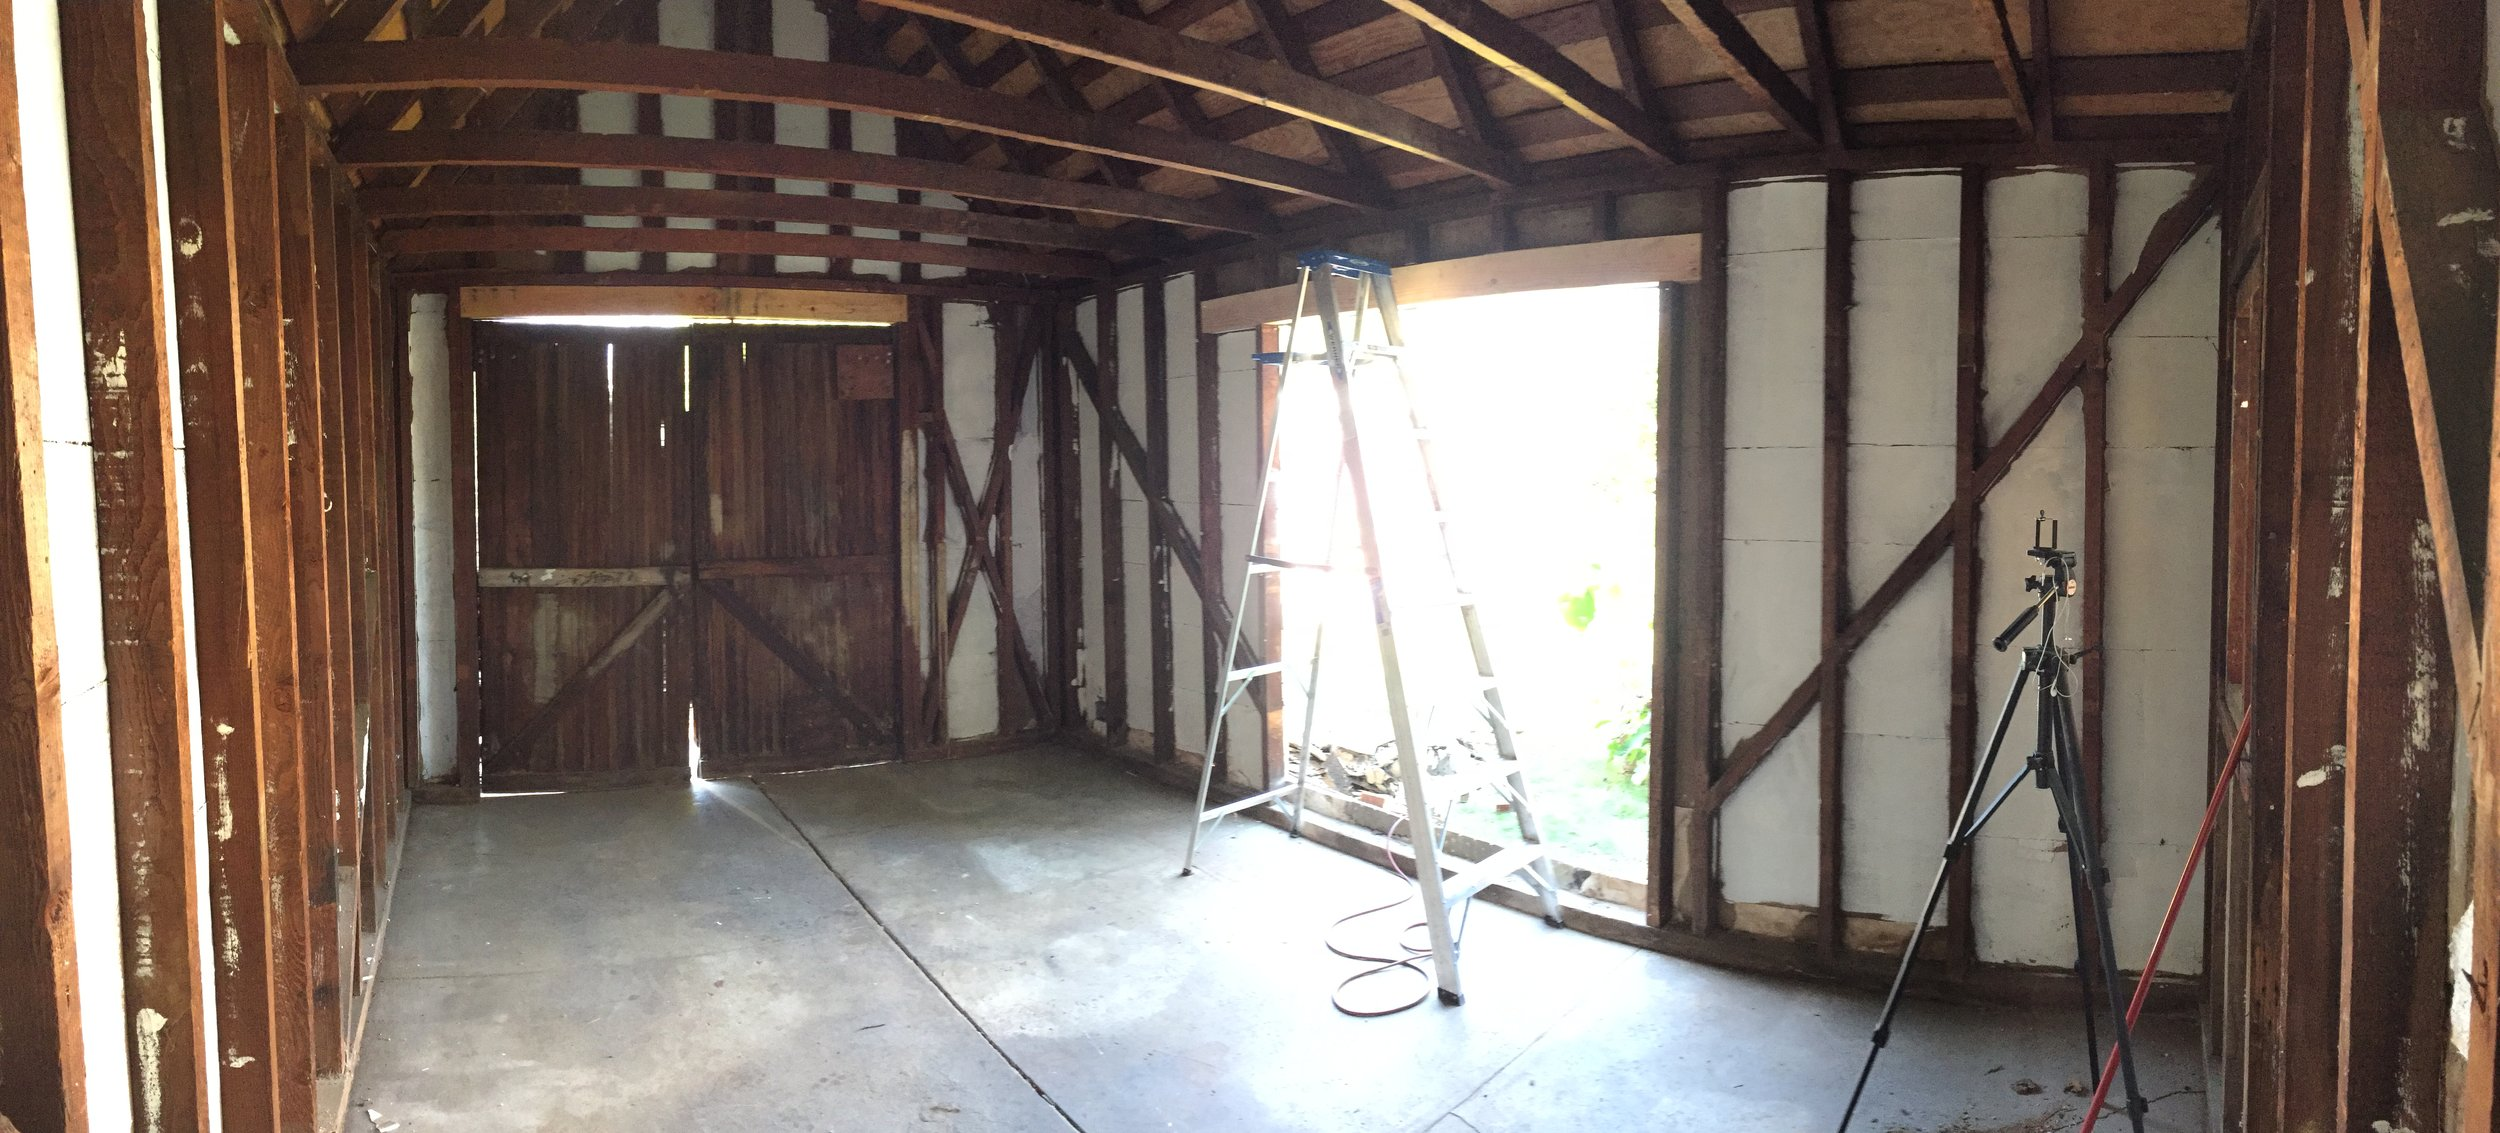 Demolitions completed and new doorway framed in.